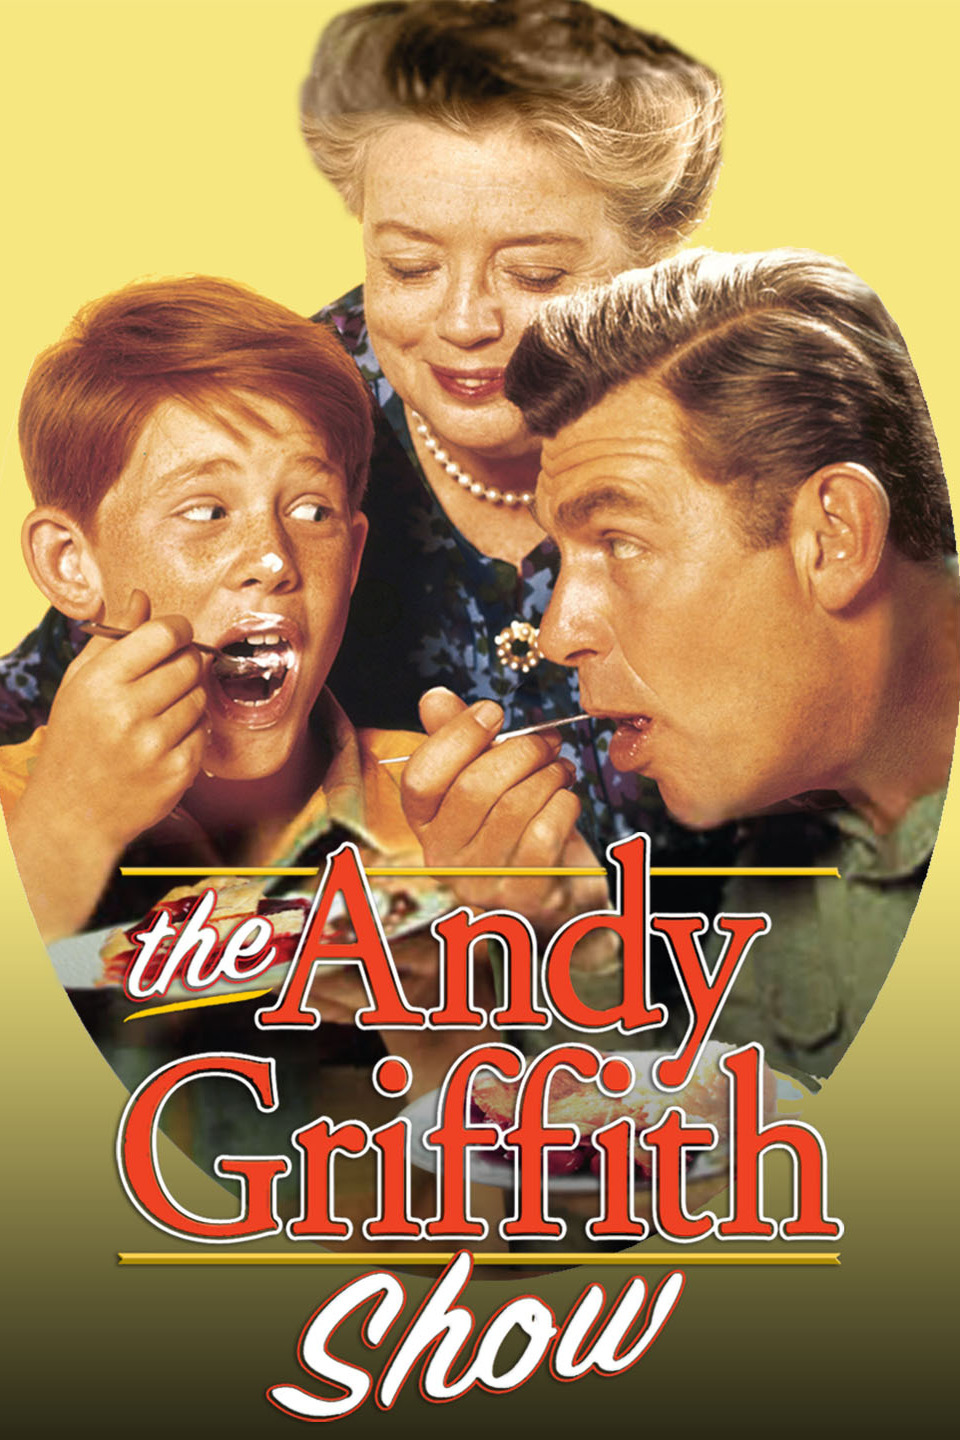 The Andy Griffith Show: Ron Howard, Frances Bavier and Andy Griffith (from left) © Paramount Pictures, All Rights Reserved.